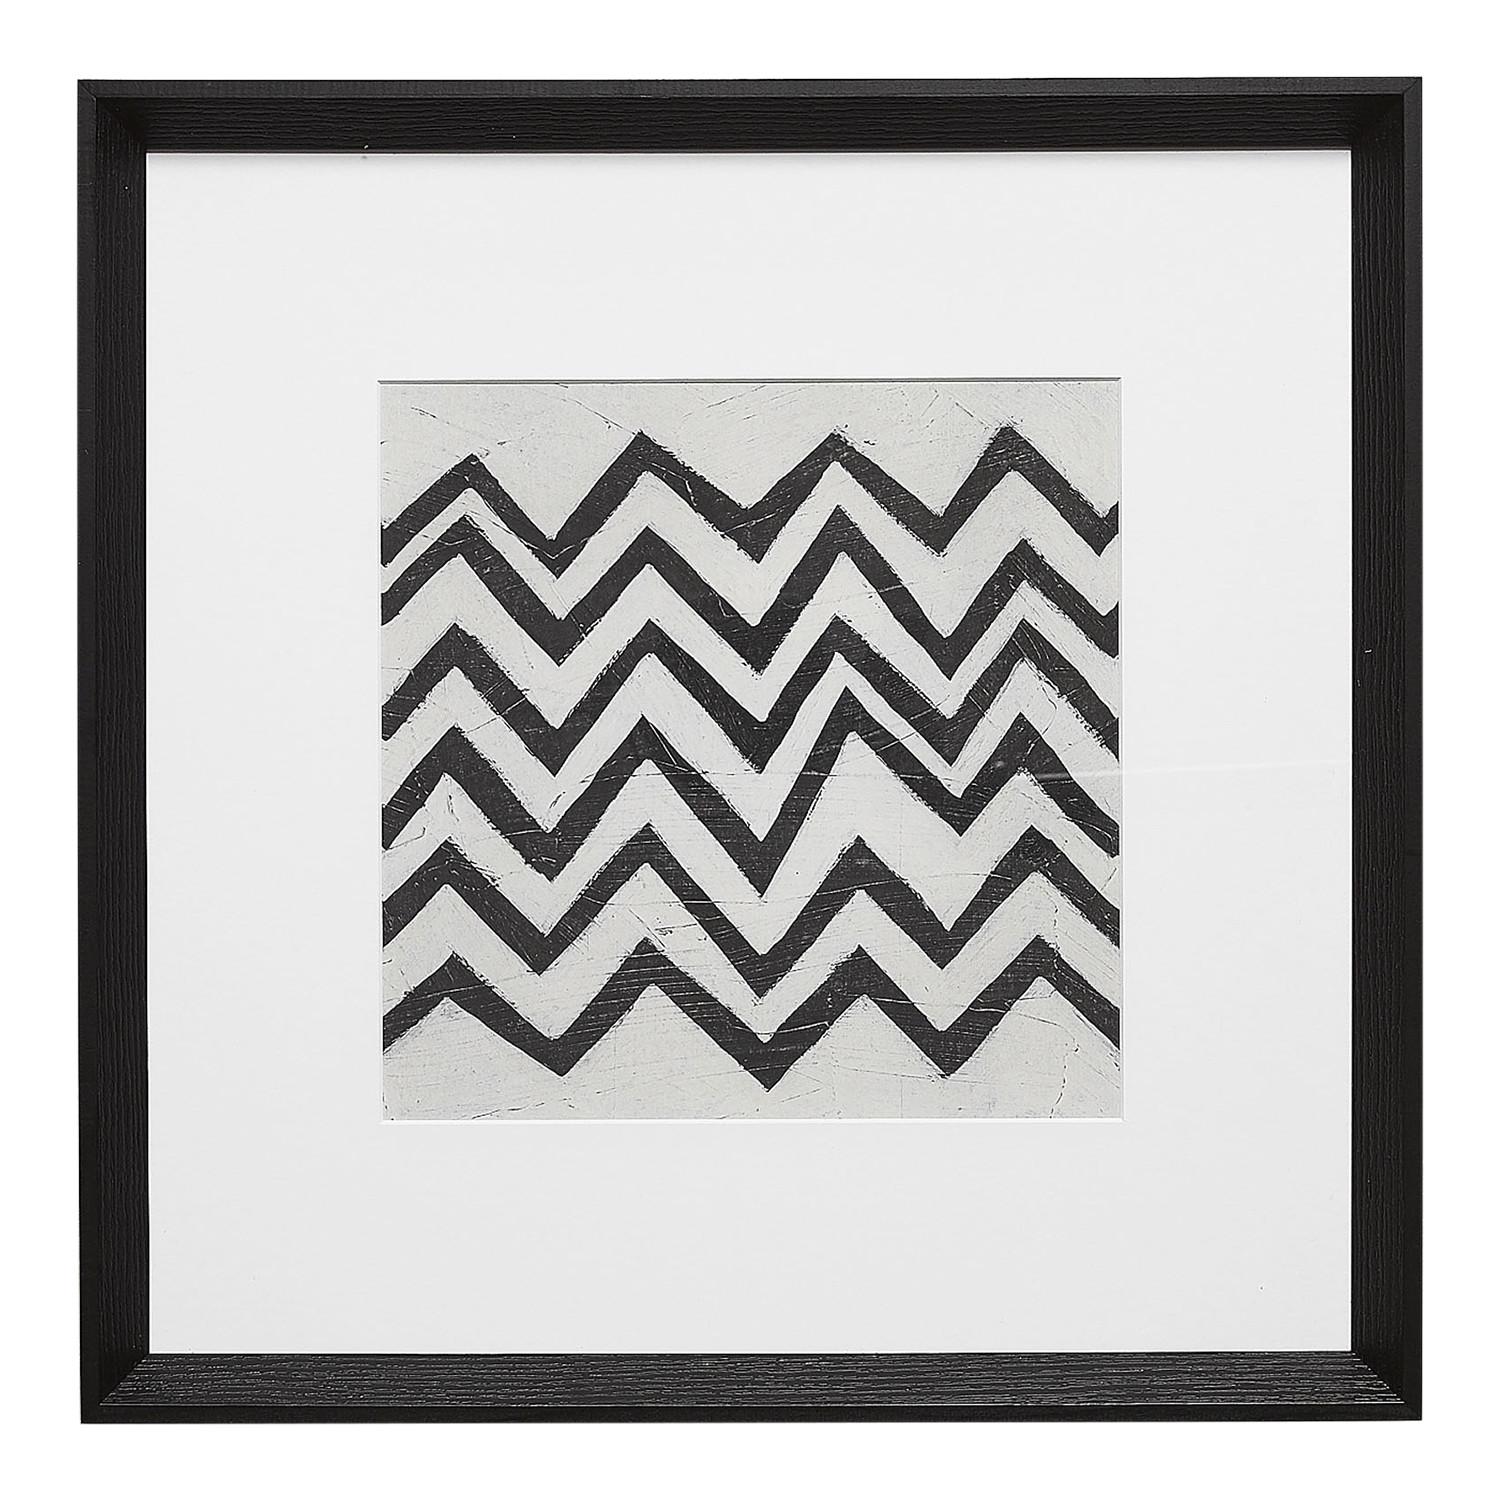 Sku lagr1433 tribal patterns ix framed print is also sometimes listed under the following manufacturer numbers ab60 55